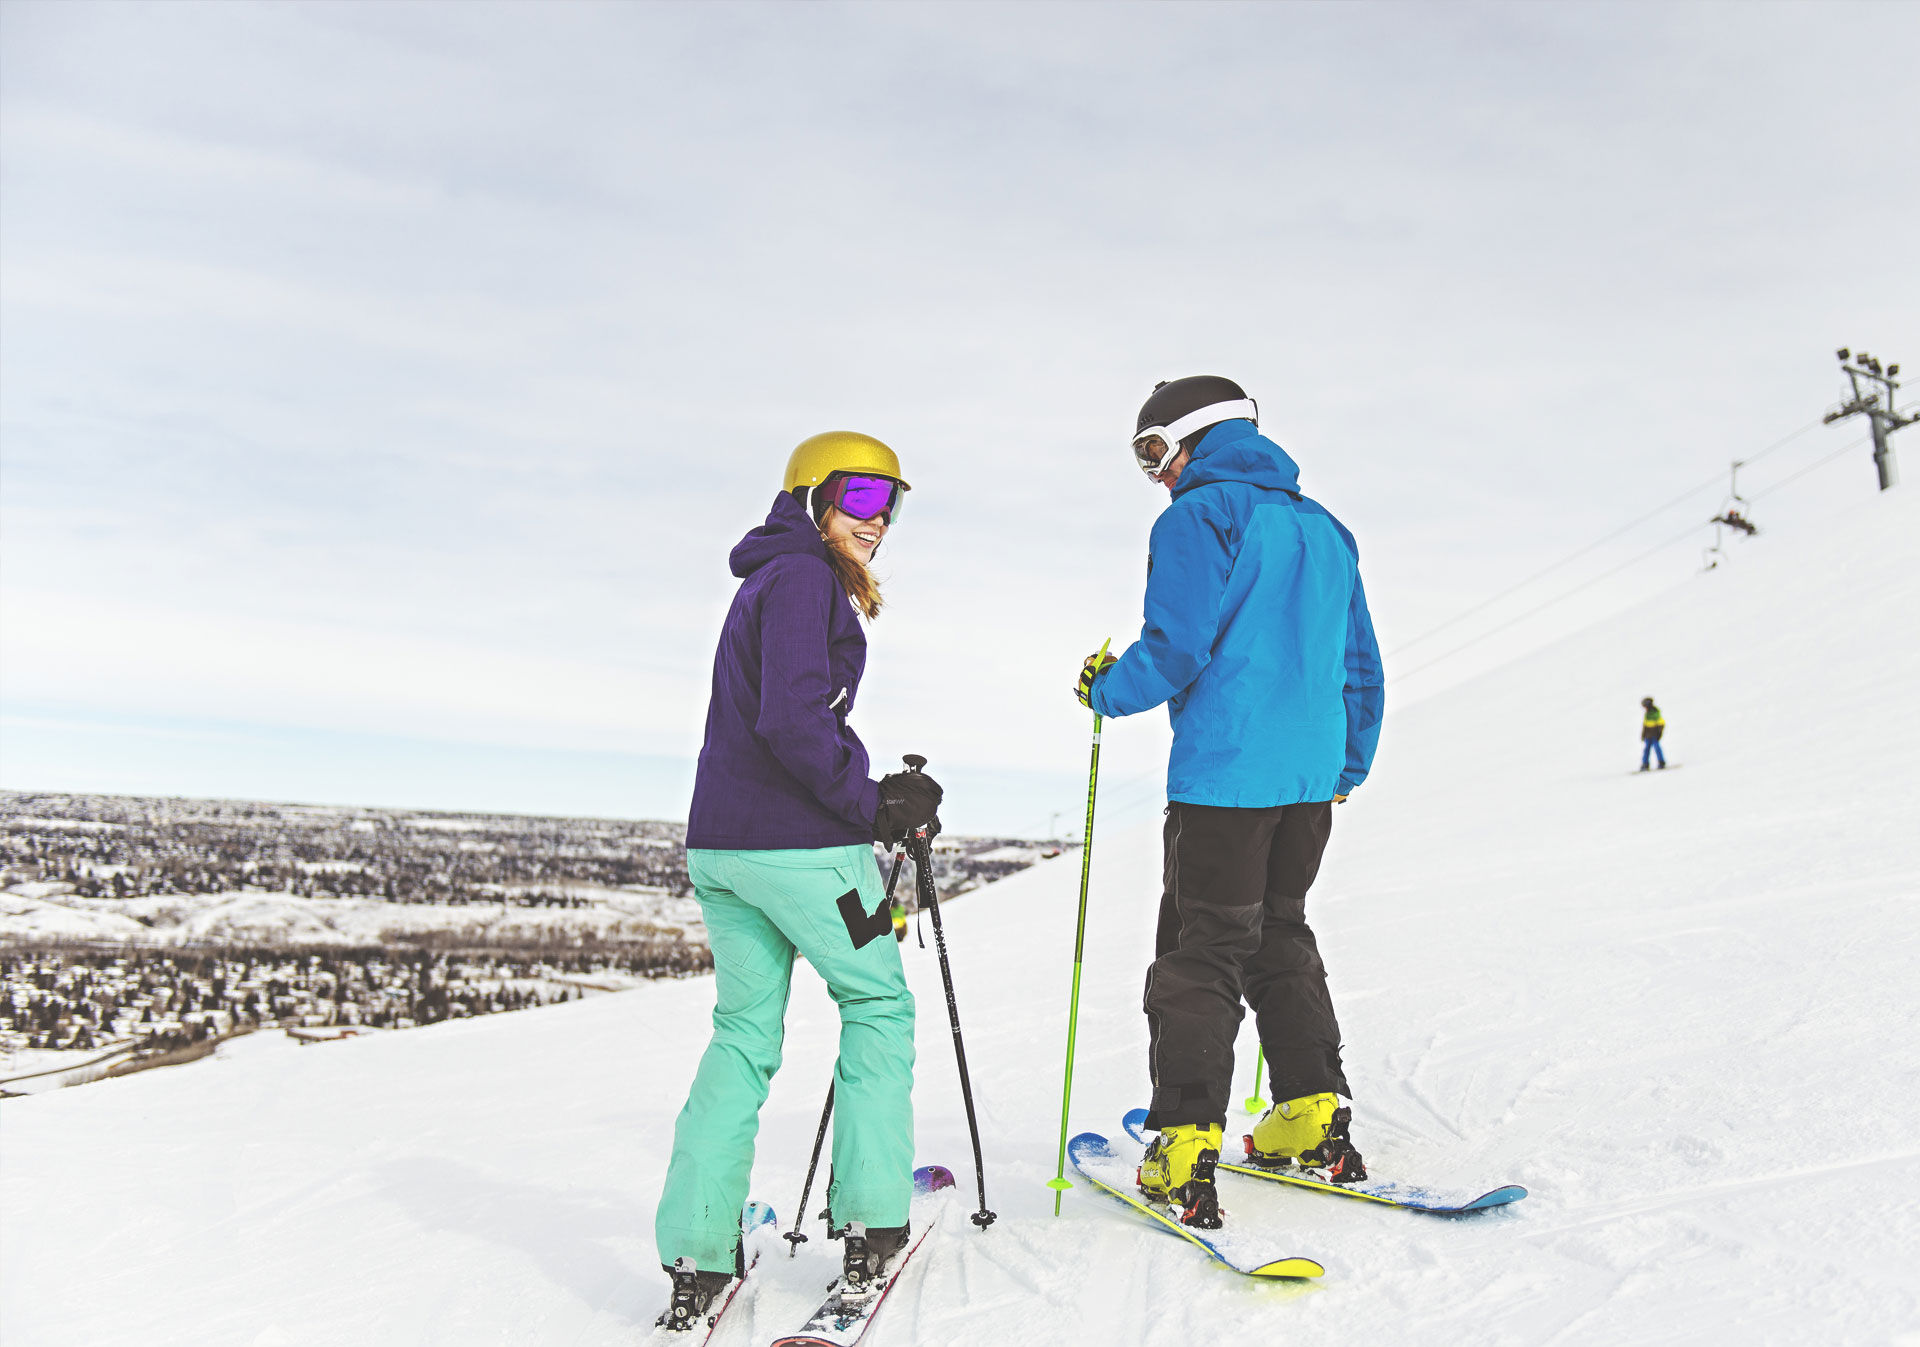 Play in the city at WinSport (Photo credit: Travel Alberta/A.V. Wakefield).